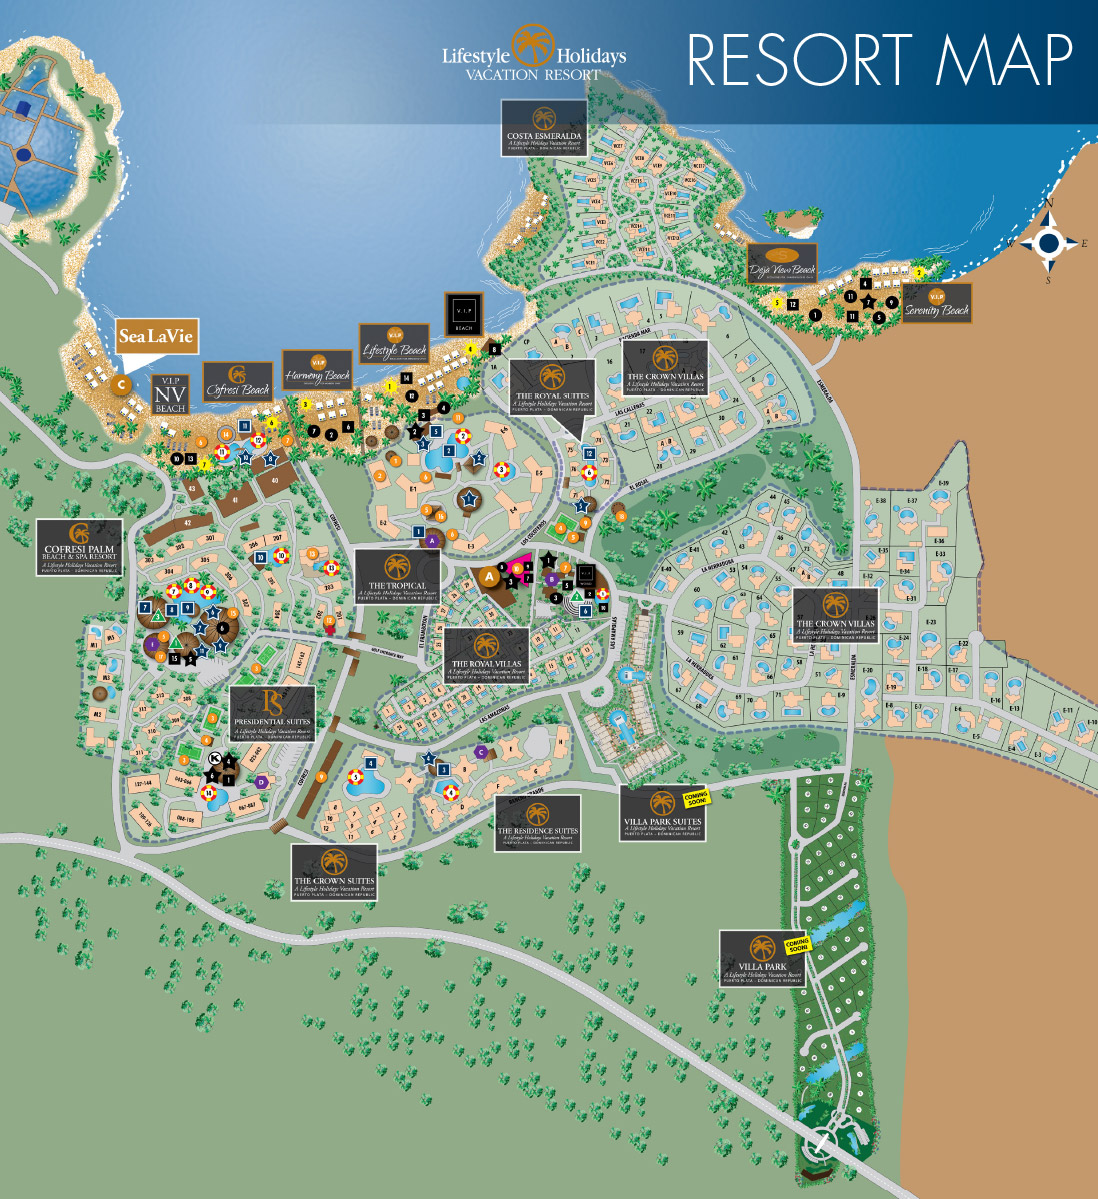 Lifestyle Holiday Vacation Club Resort Map